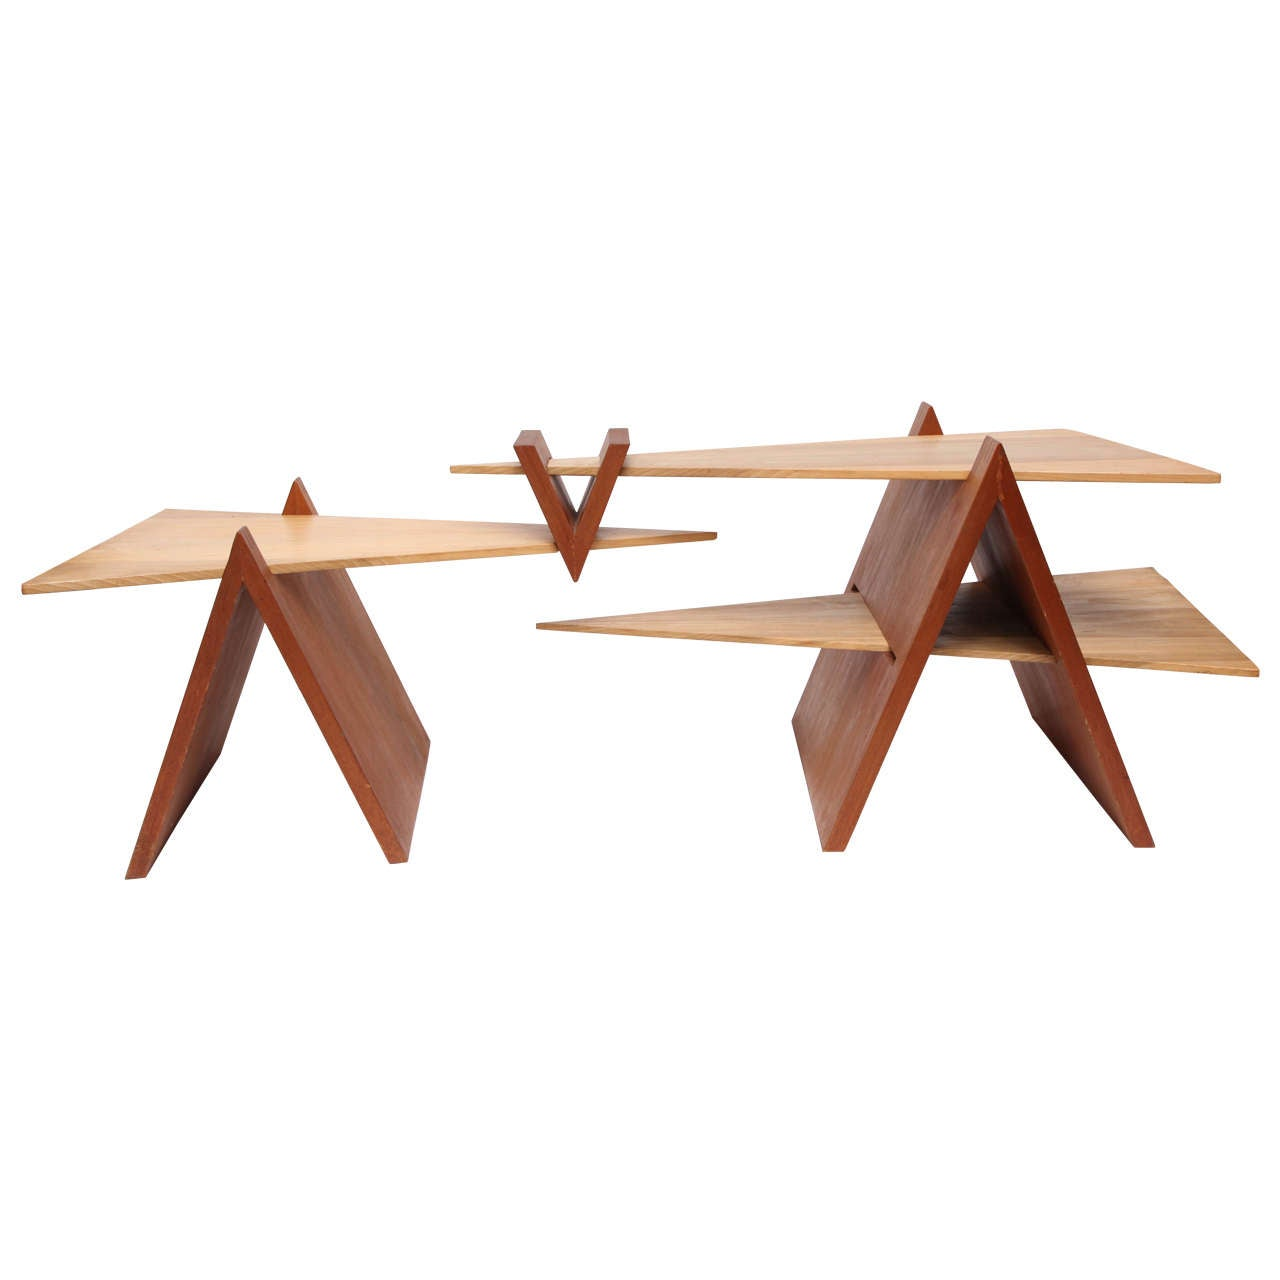 1970s Constructivist Wood Puzzle Table For Sale